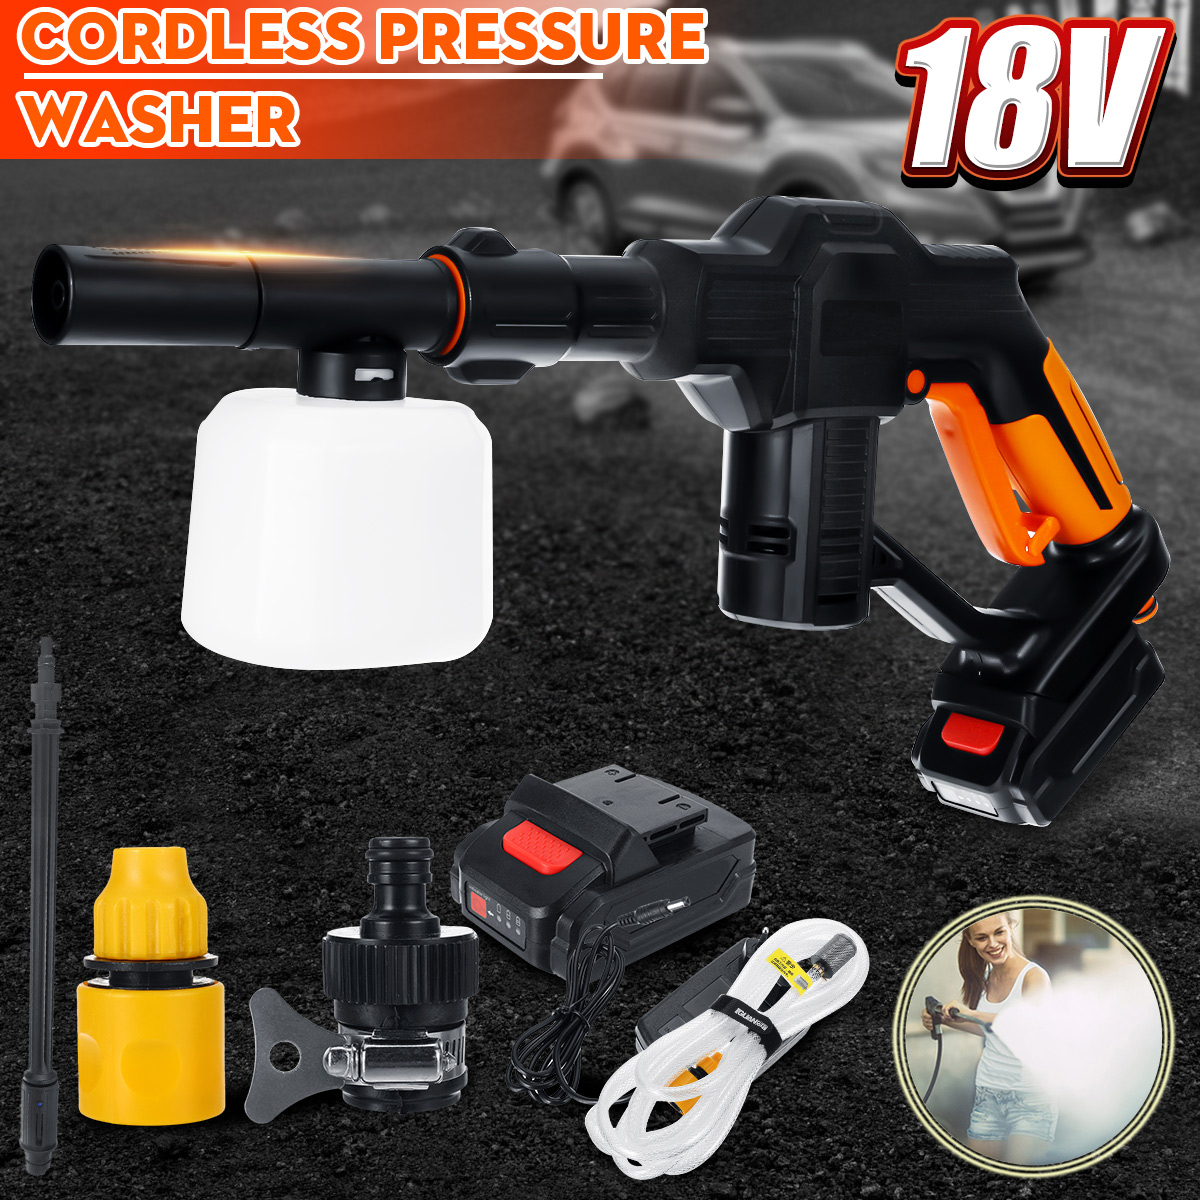 Car Washer 12V Portable Cordless High Pressure Cleaner Rechargable Self-priming Washing Machine Auto Garden Electric Cleaning